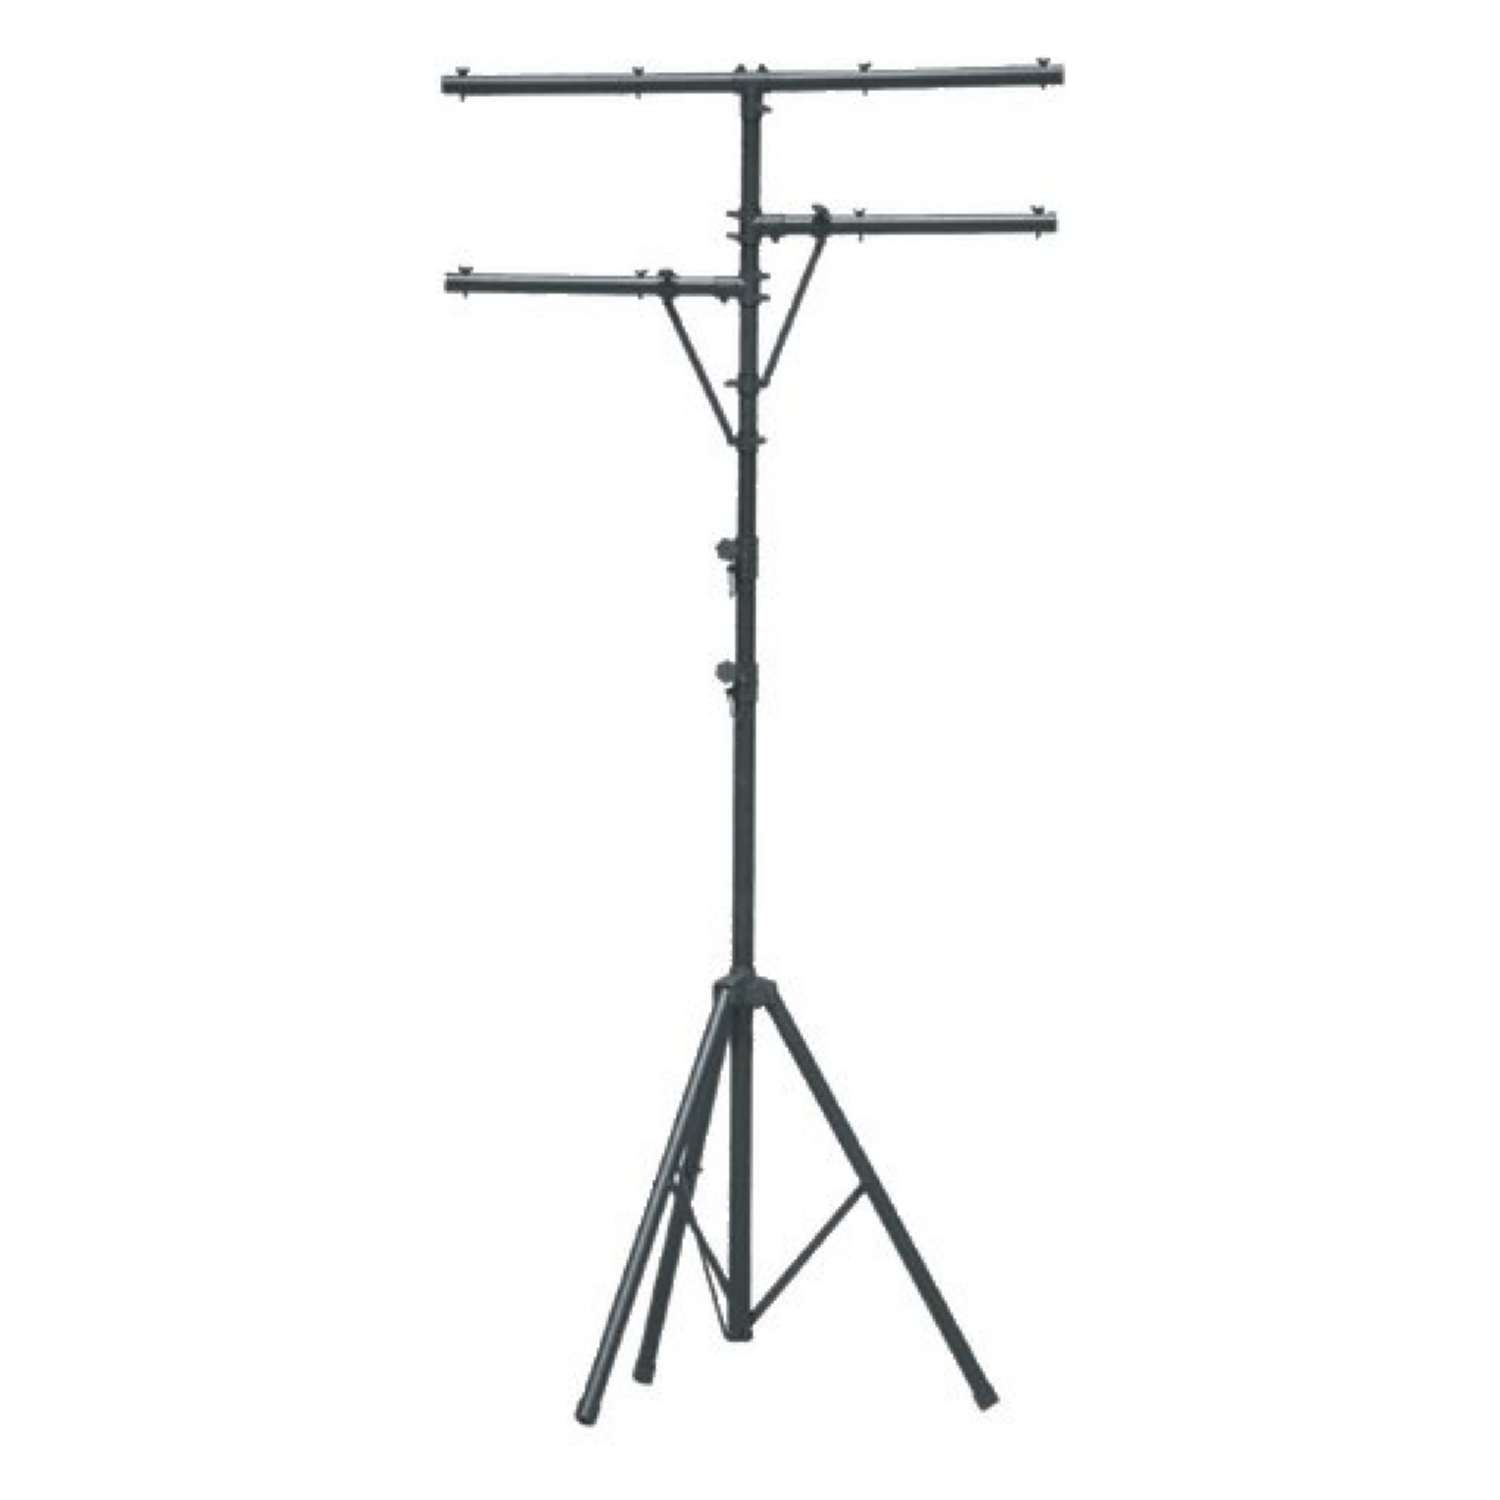 SoundKing LTS1B Aluminium Lighting Stand with T Bar and Side Arms. 3.25 m. 1